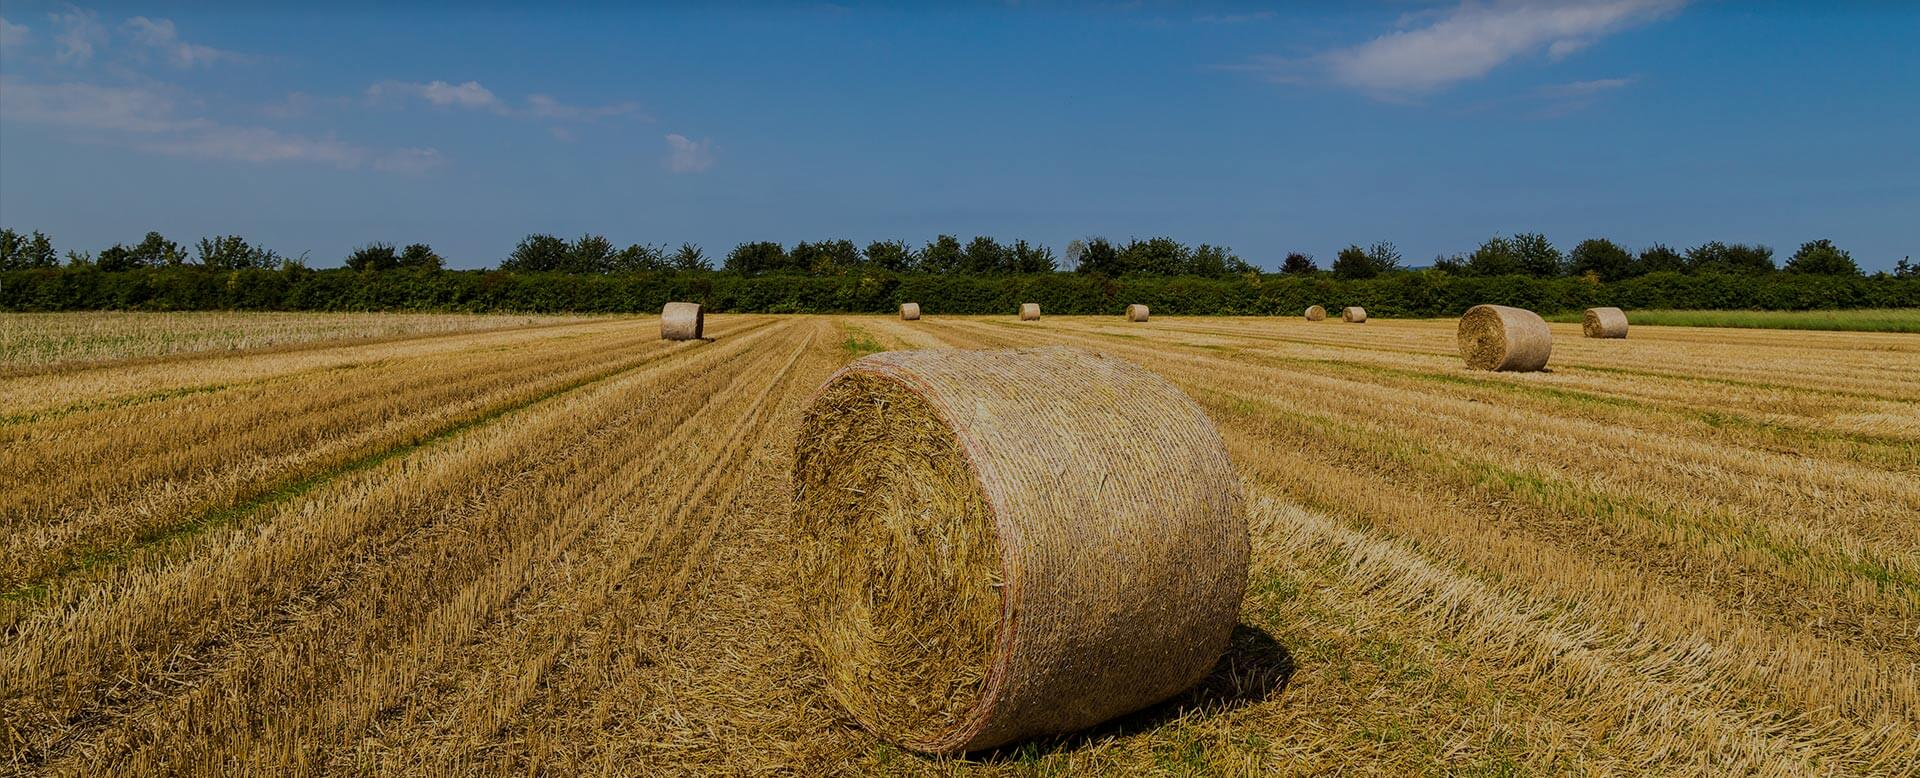 Silage & Forage | Feed Storage Supplies | KSI Supply Inc